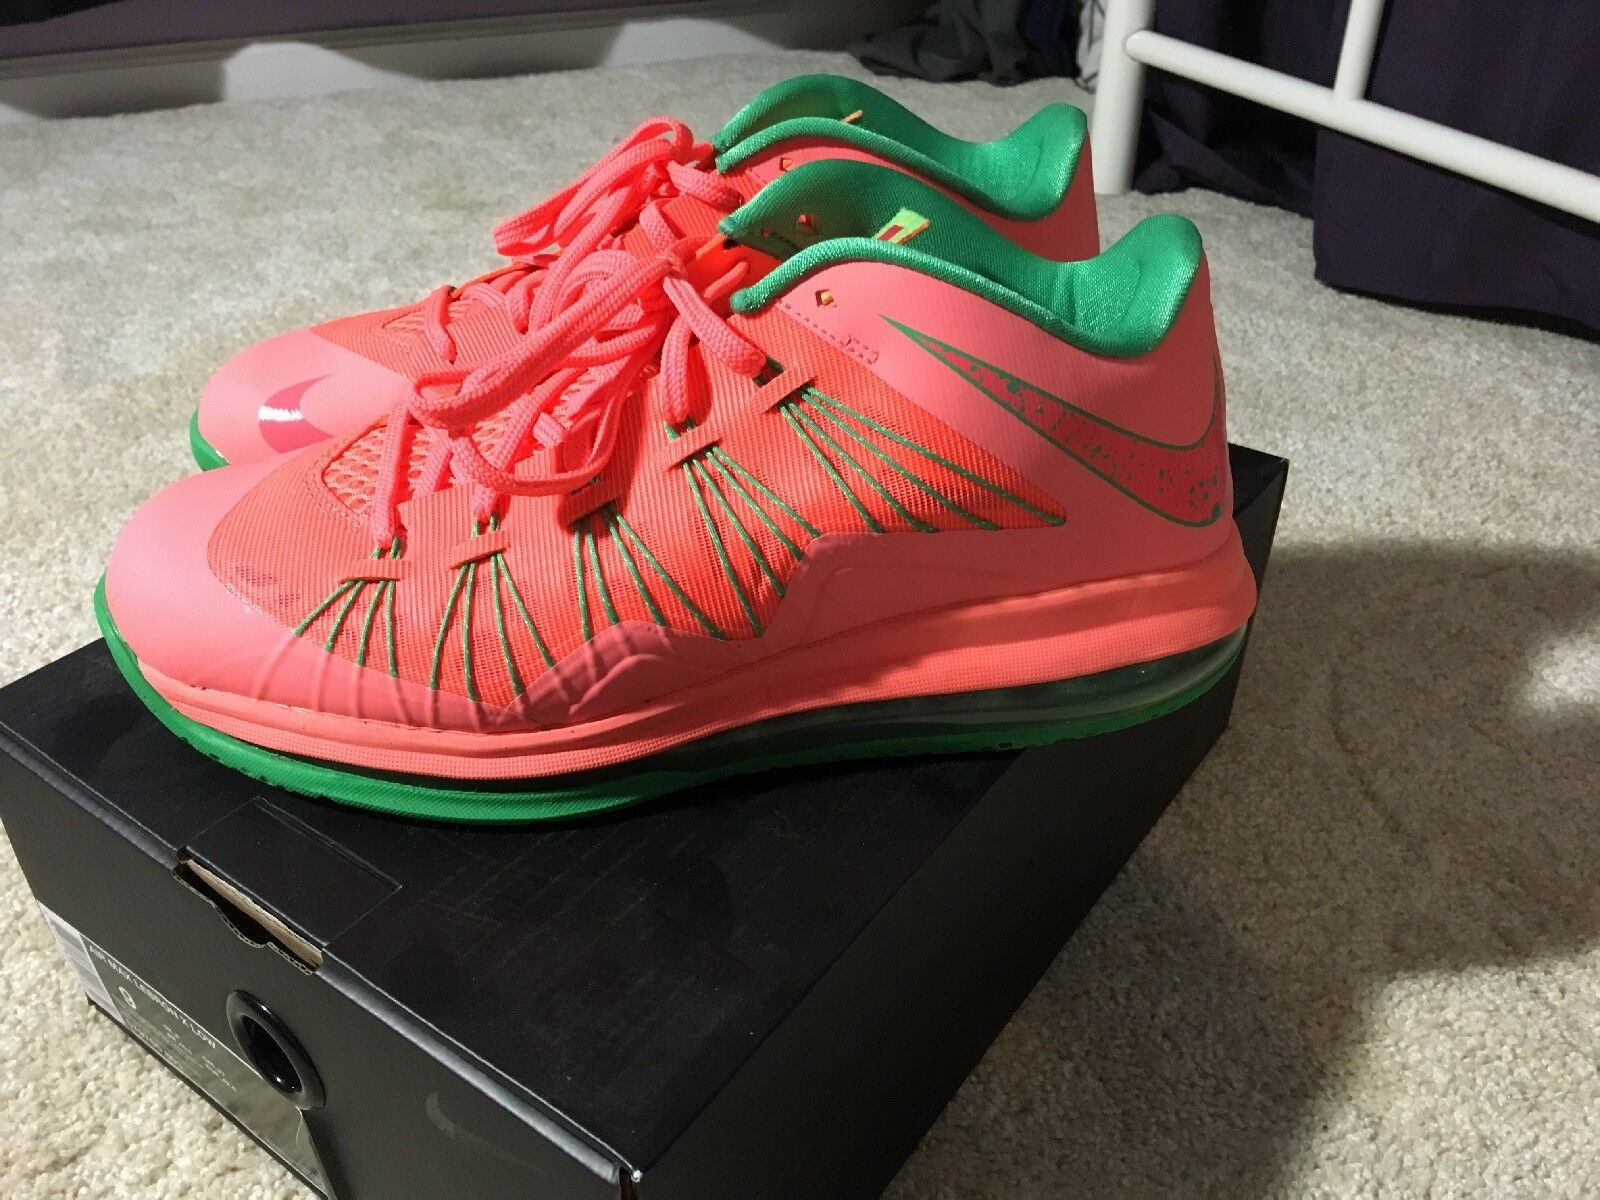 96c4091a32 James Low 10 Size 9 Watermelon And Green Lebron Nike nufkau9220-new shoes